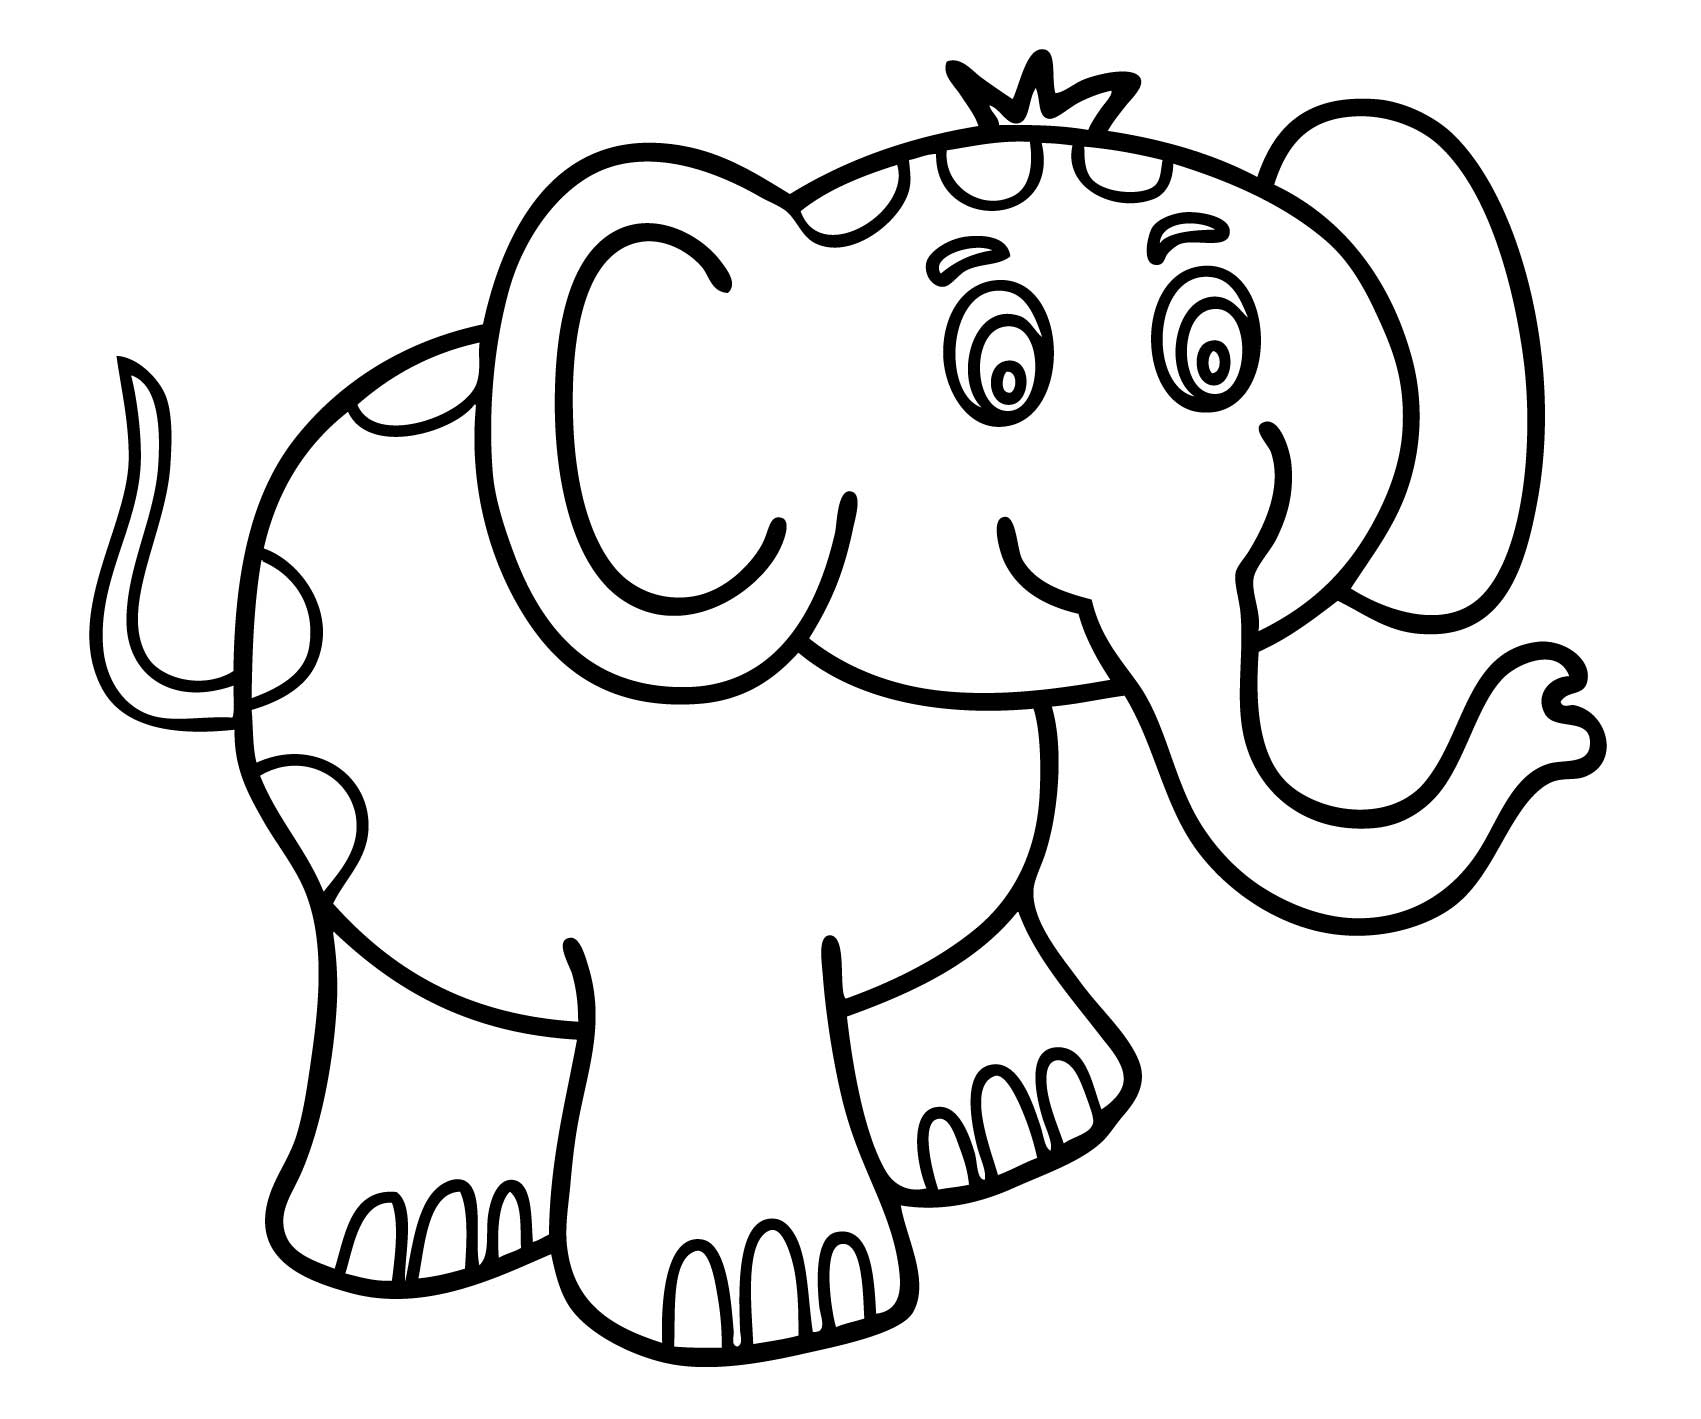 coloring pages for kids easy easy coloring pages to download and print for free kids for easy pages coloring